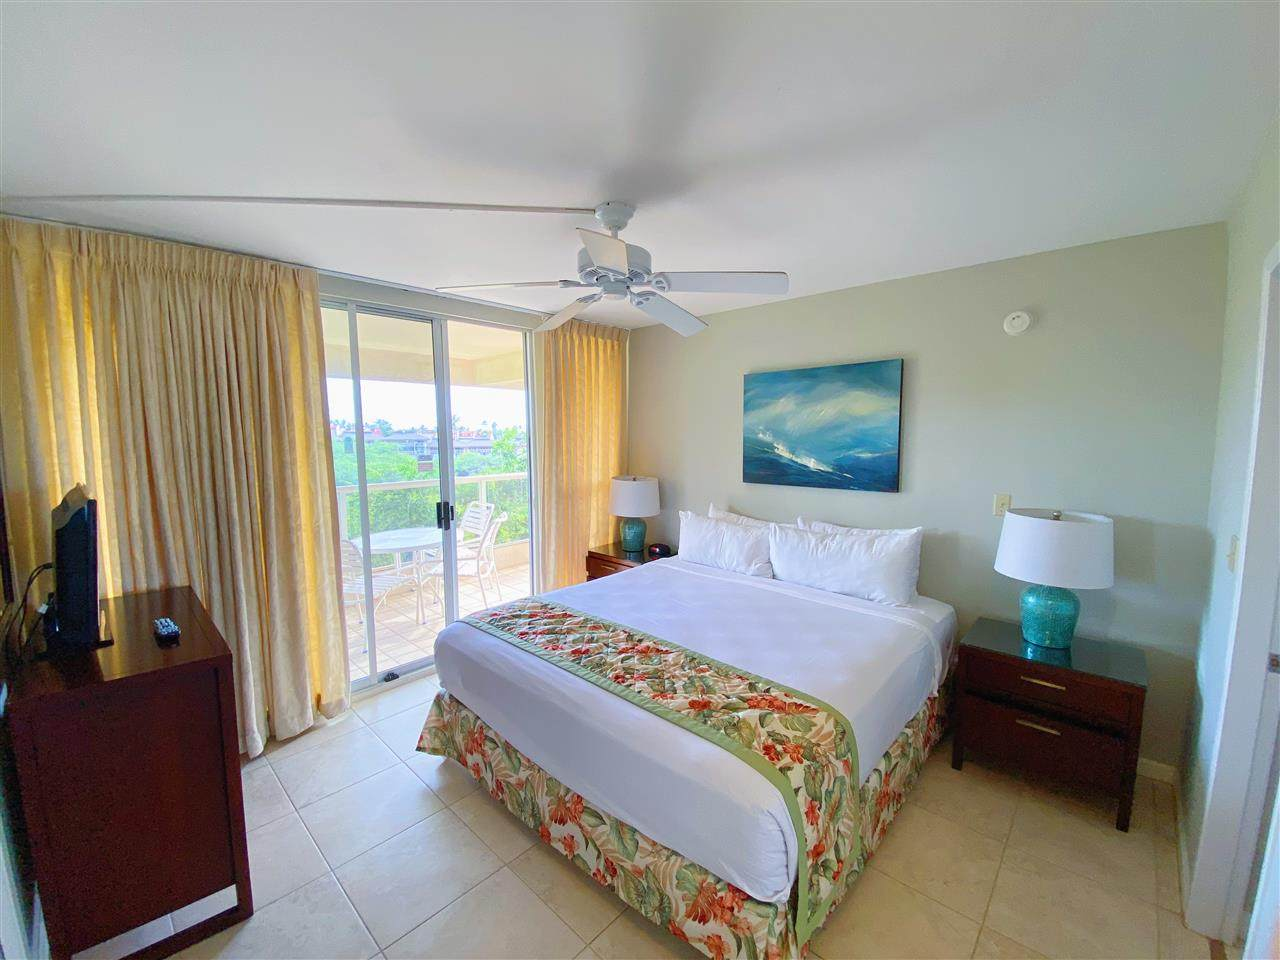 2575 Kihei Rd - Photo 1